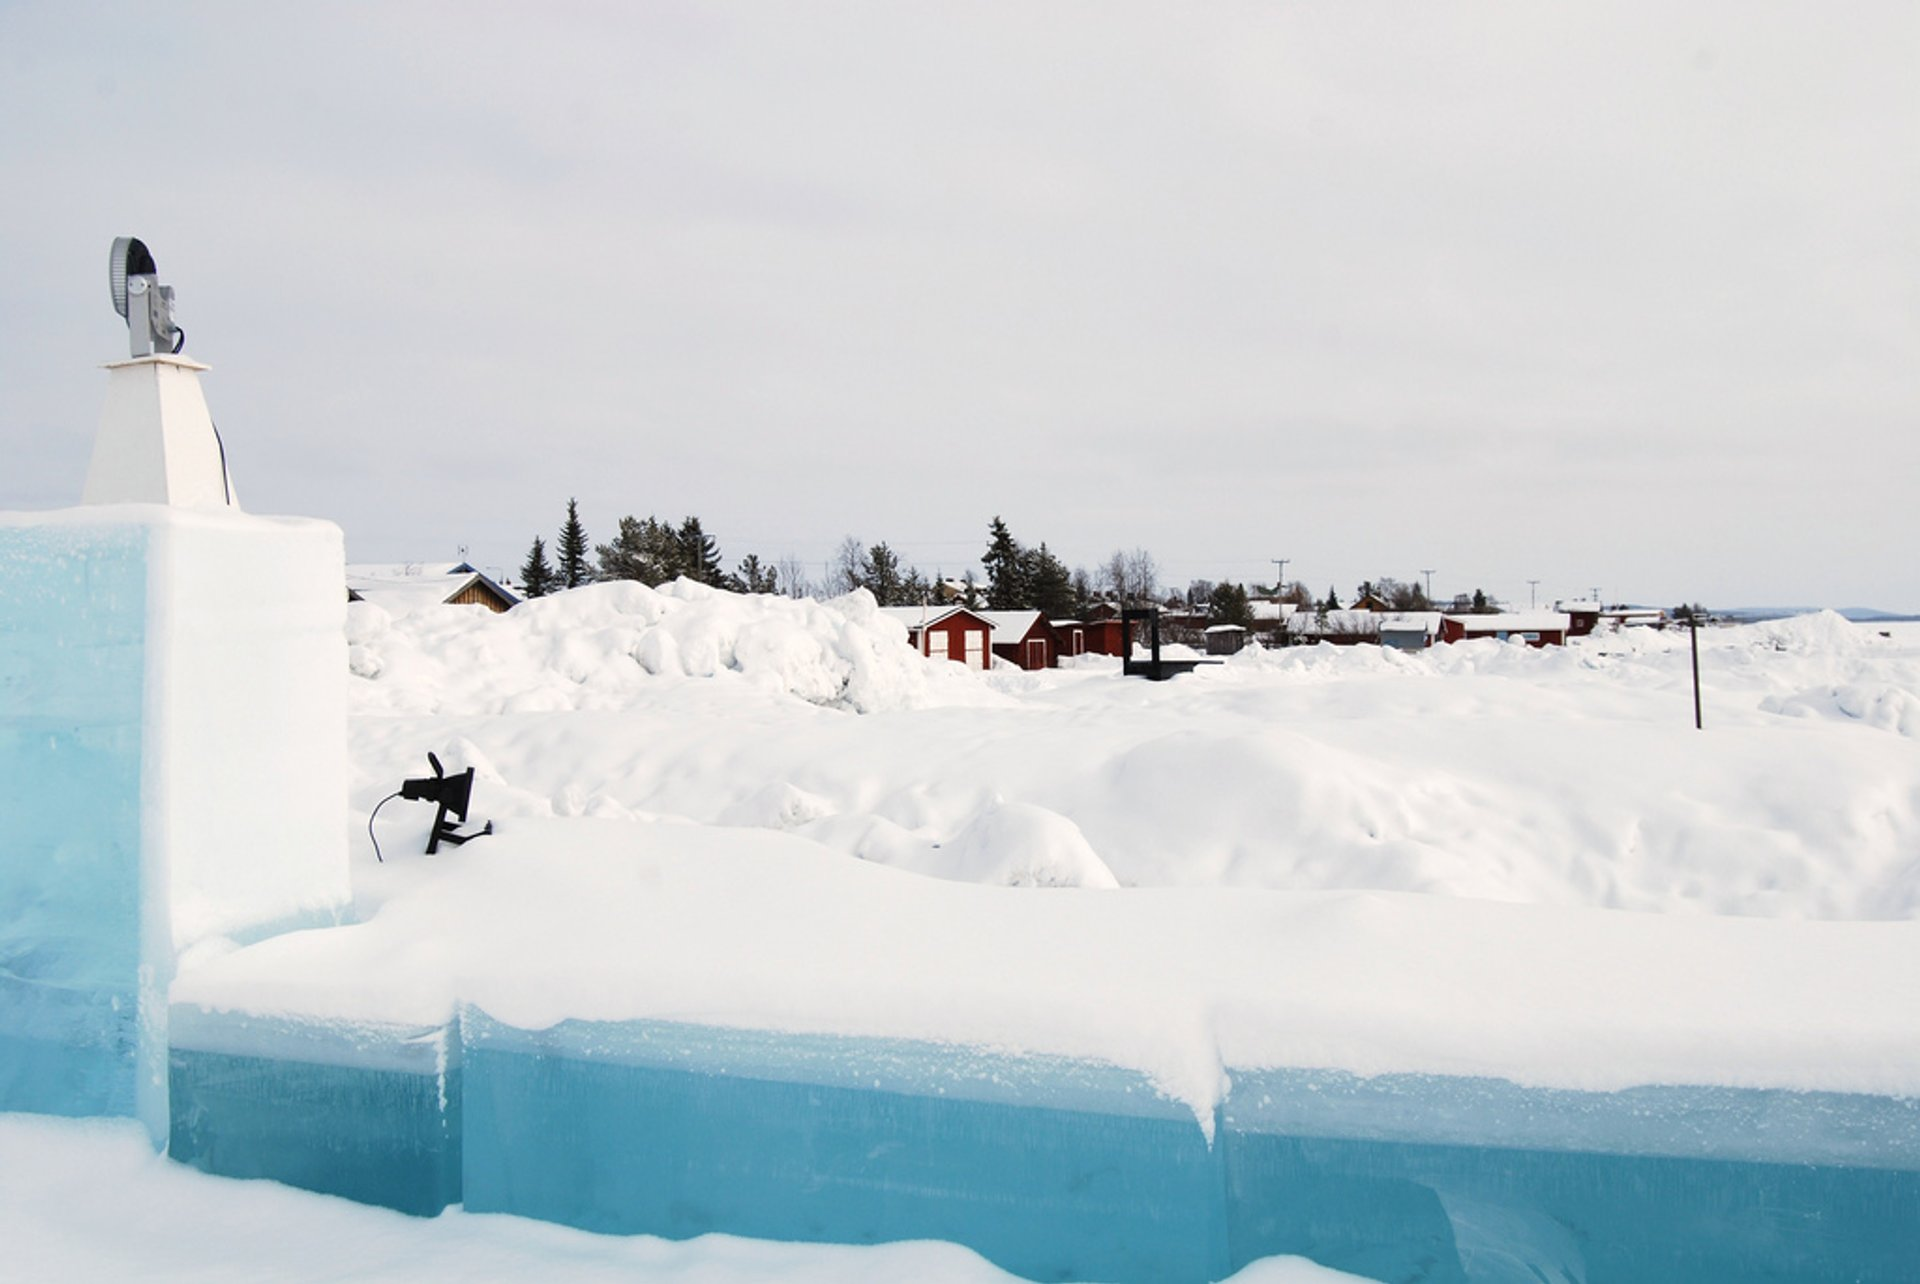 Best time to see Ice Hotel in Sweden 2020